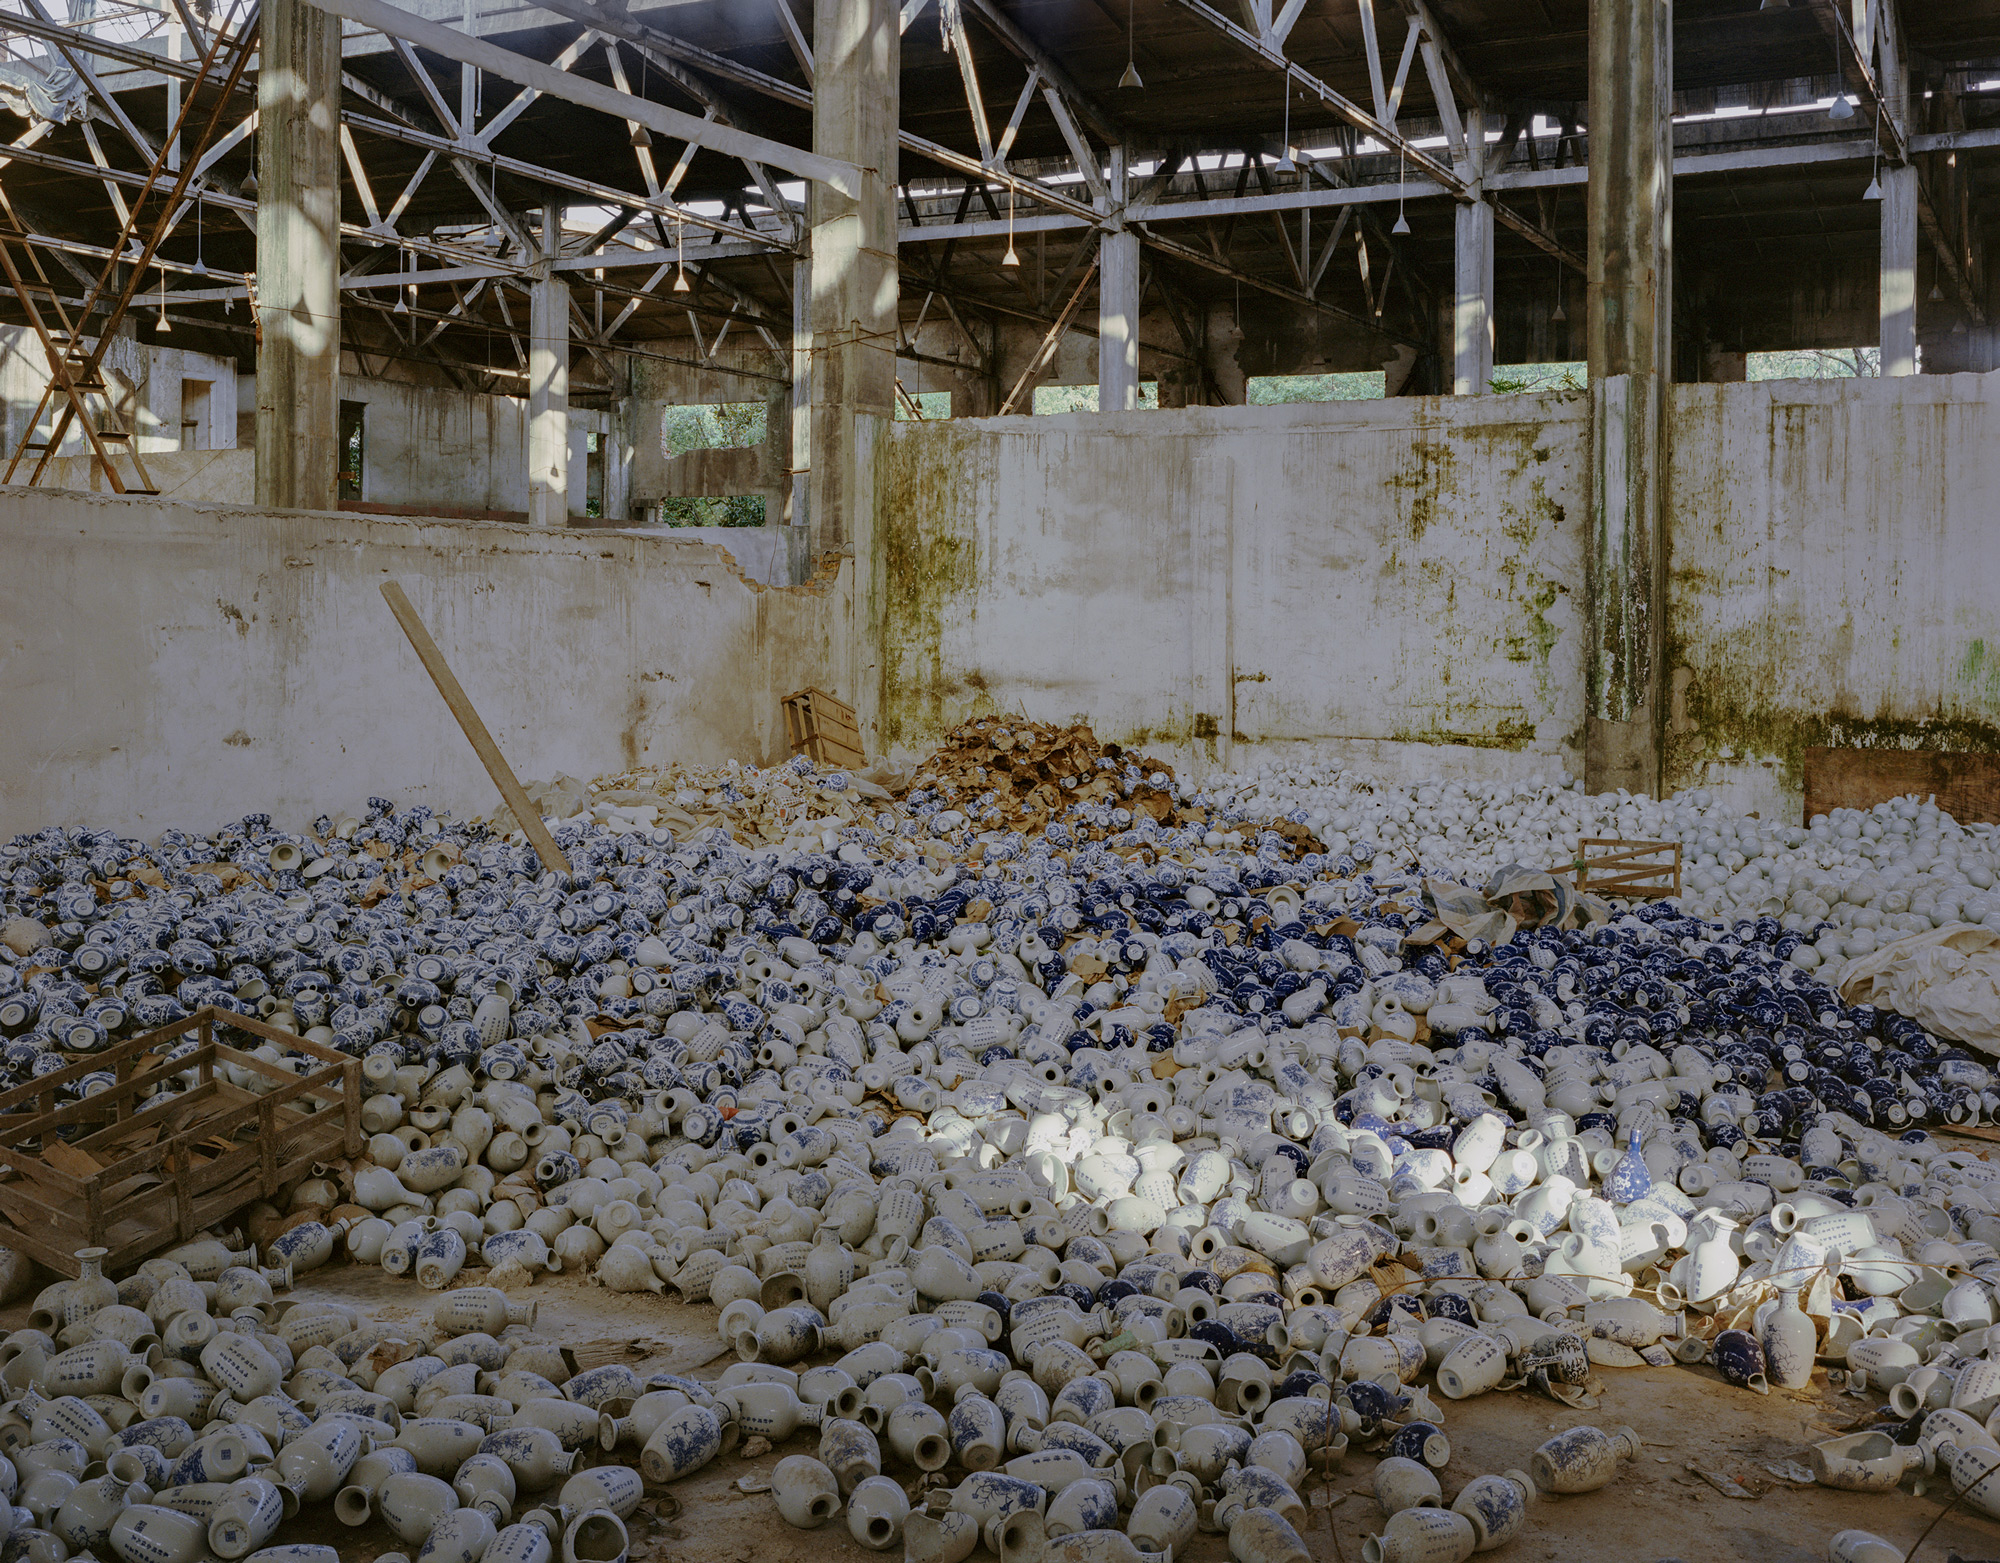 Bottles lay strewn across the floor of a porcelain factory in Jingdezhen city, Jiangxi province, July 2017. Jingdezhen is the historic center of Chinese porcelain production, famous for its high-quality kaolin reserves. However, as kaolin reserves have been depleted, hundreds of mining and production companies have been shuttered over the past two decades.